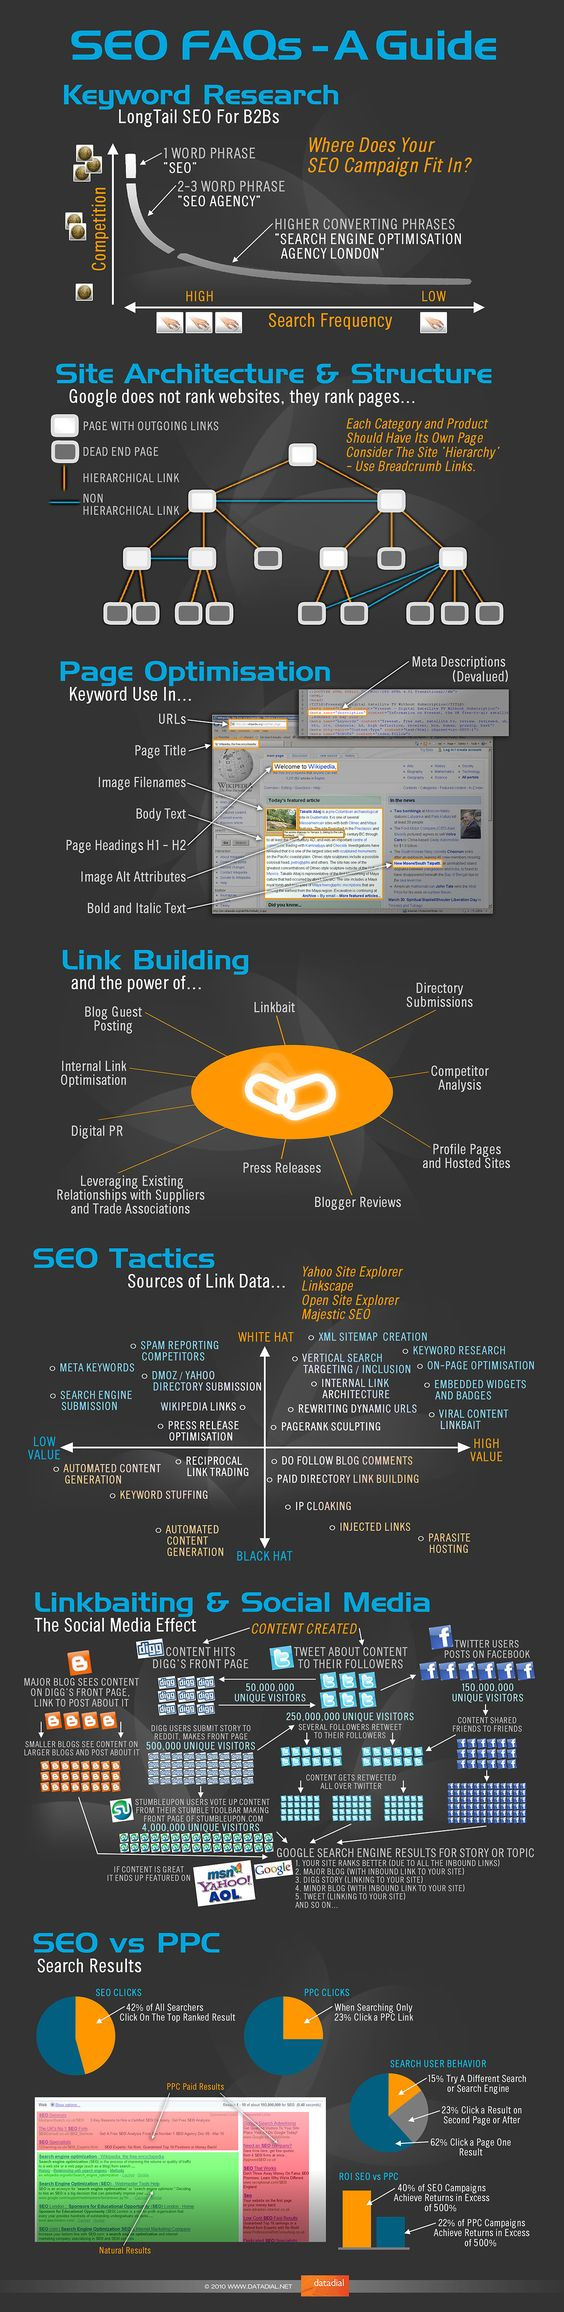 A Very Cool SEO Infographic: